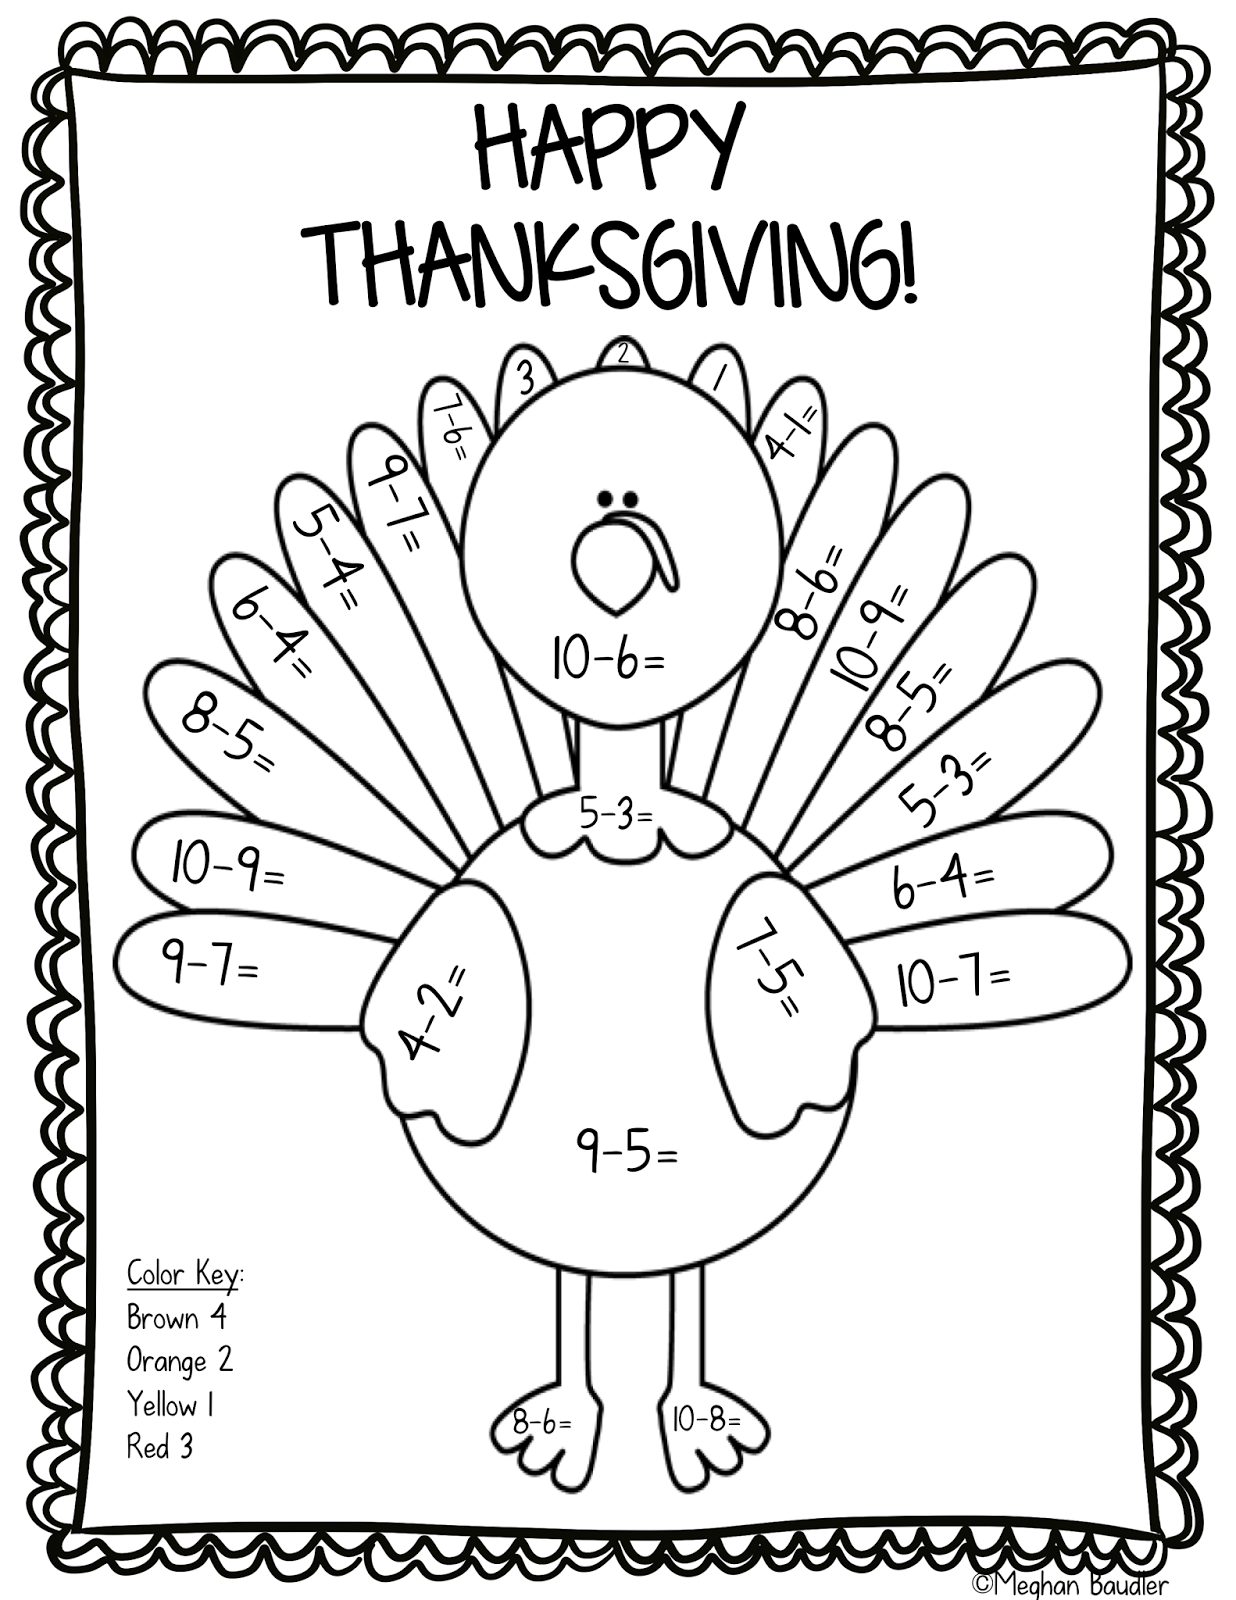 Adding Worksheet Thanksgiving Color By Number